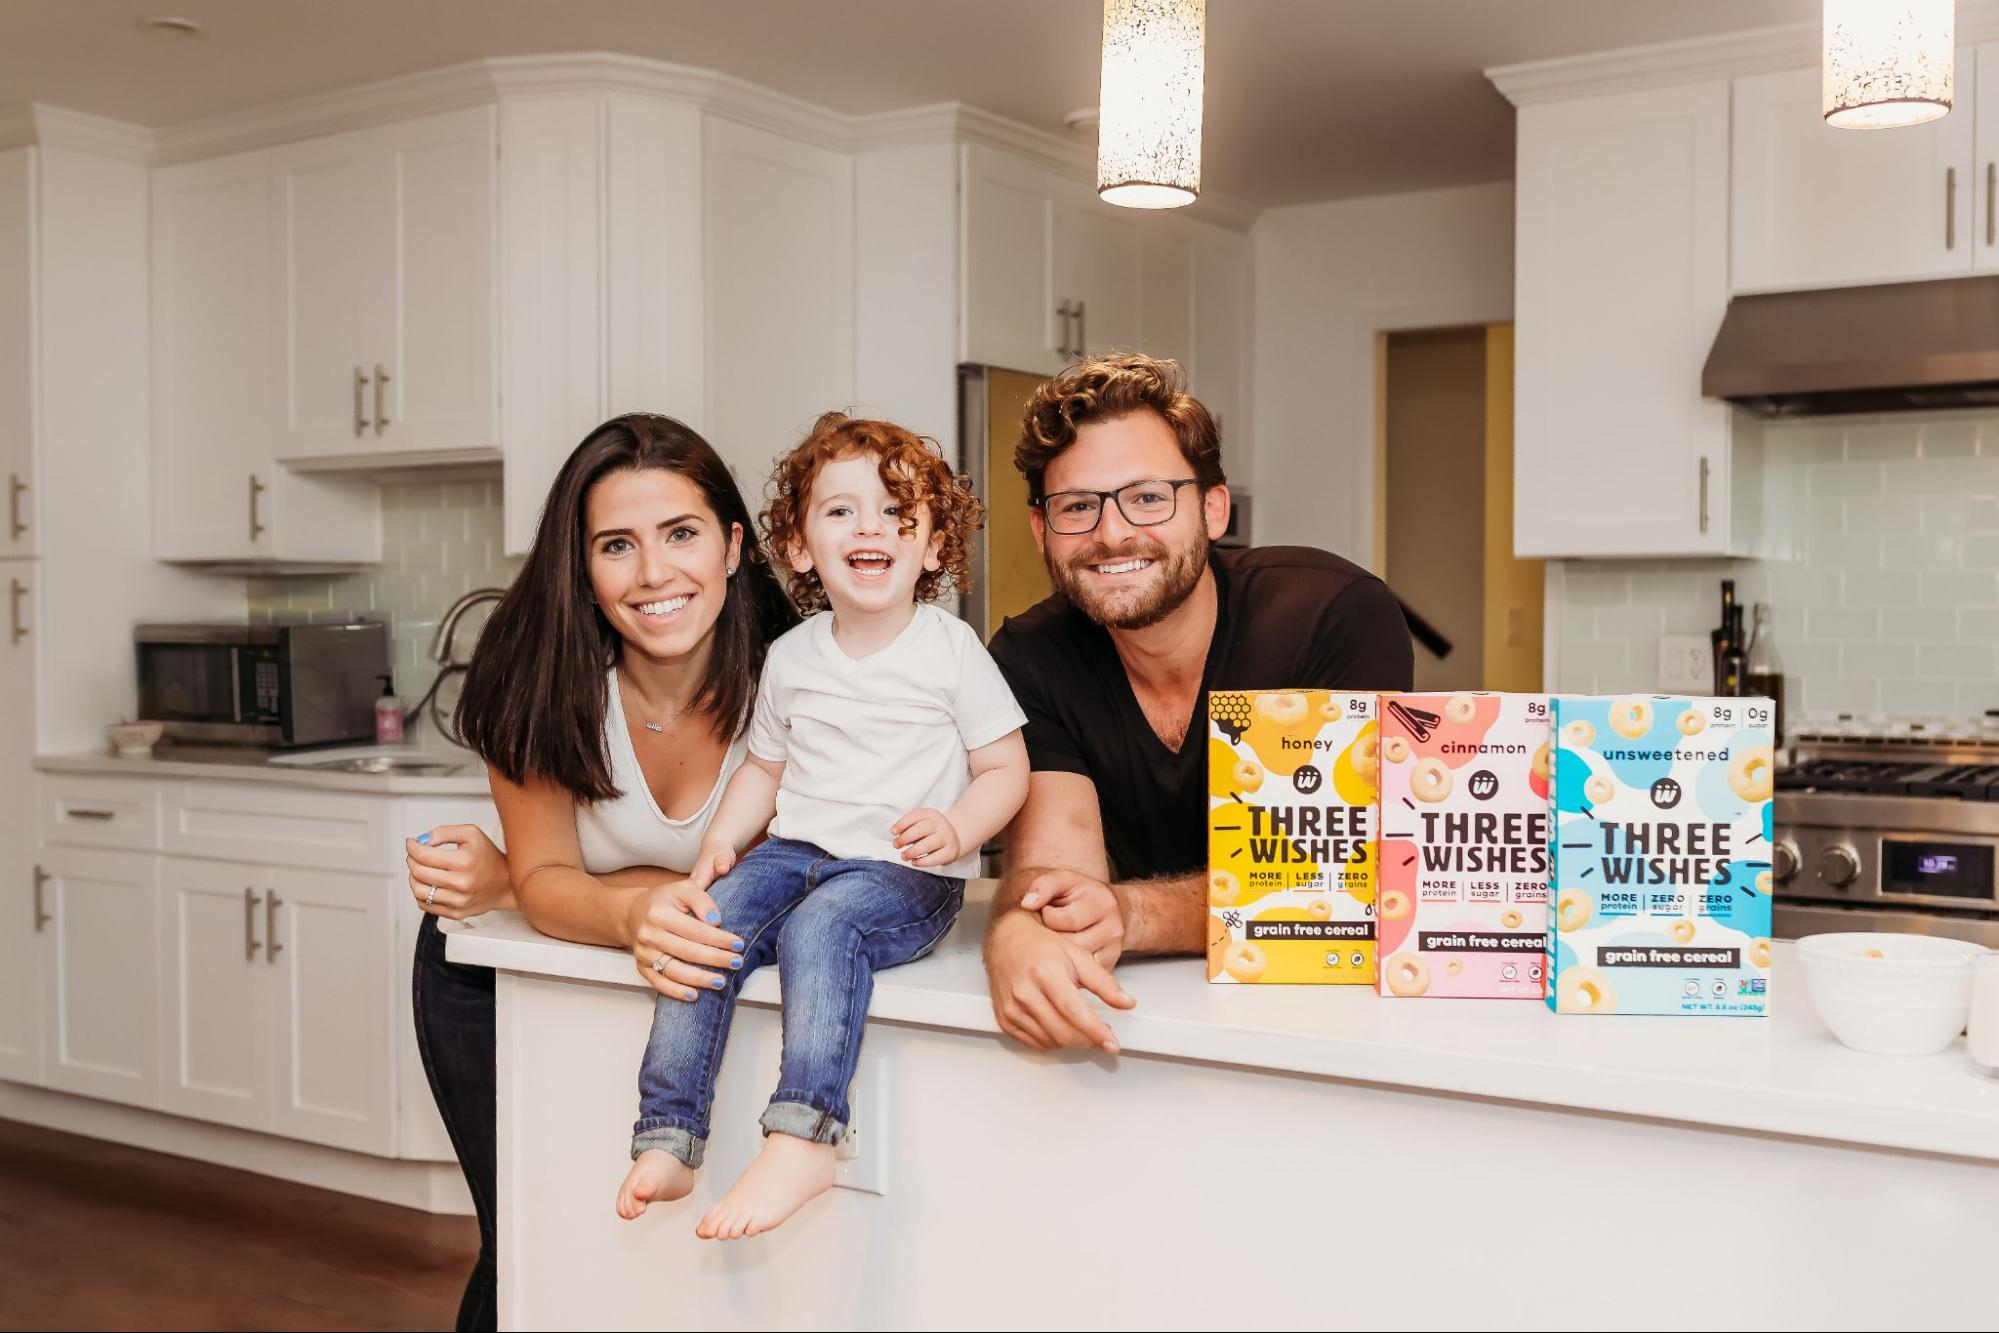 Margaret and Ian Wishingard along with their song Ellis in a kitchen setting with boxes of Three Wishes Cereal on the counter.